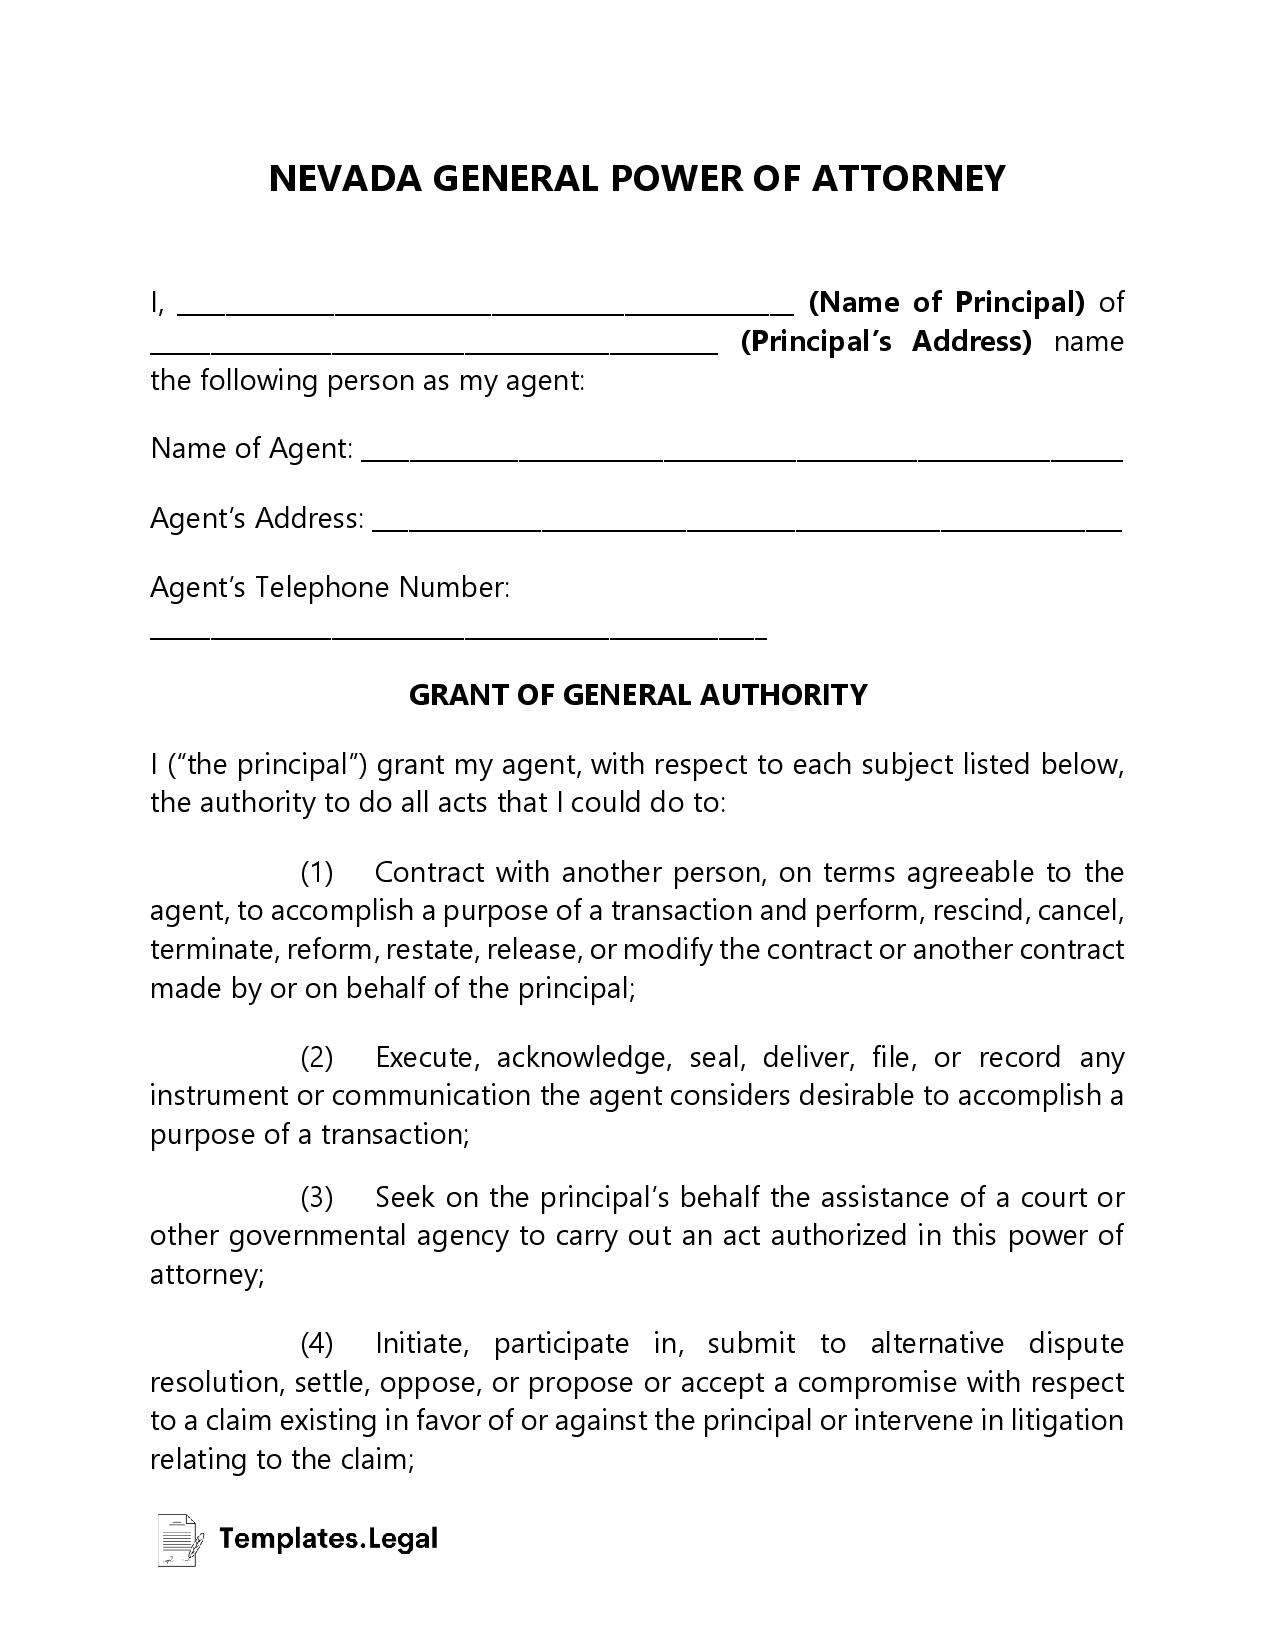 Nevada General Power of Attorney - Templates.Legal